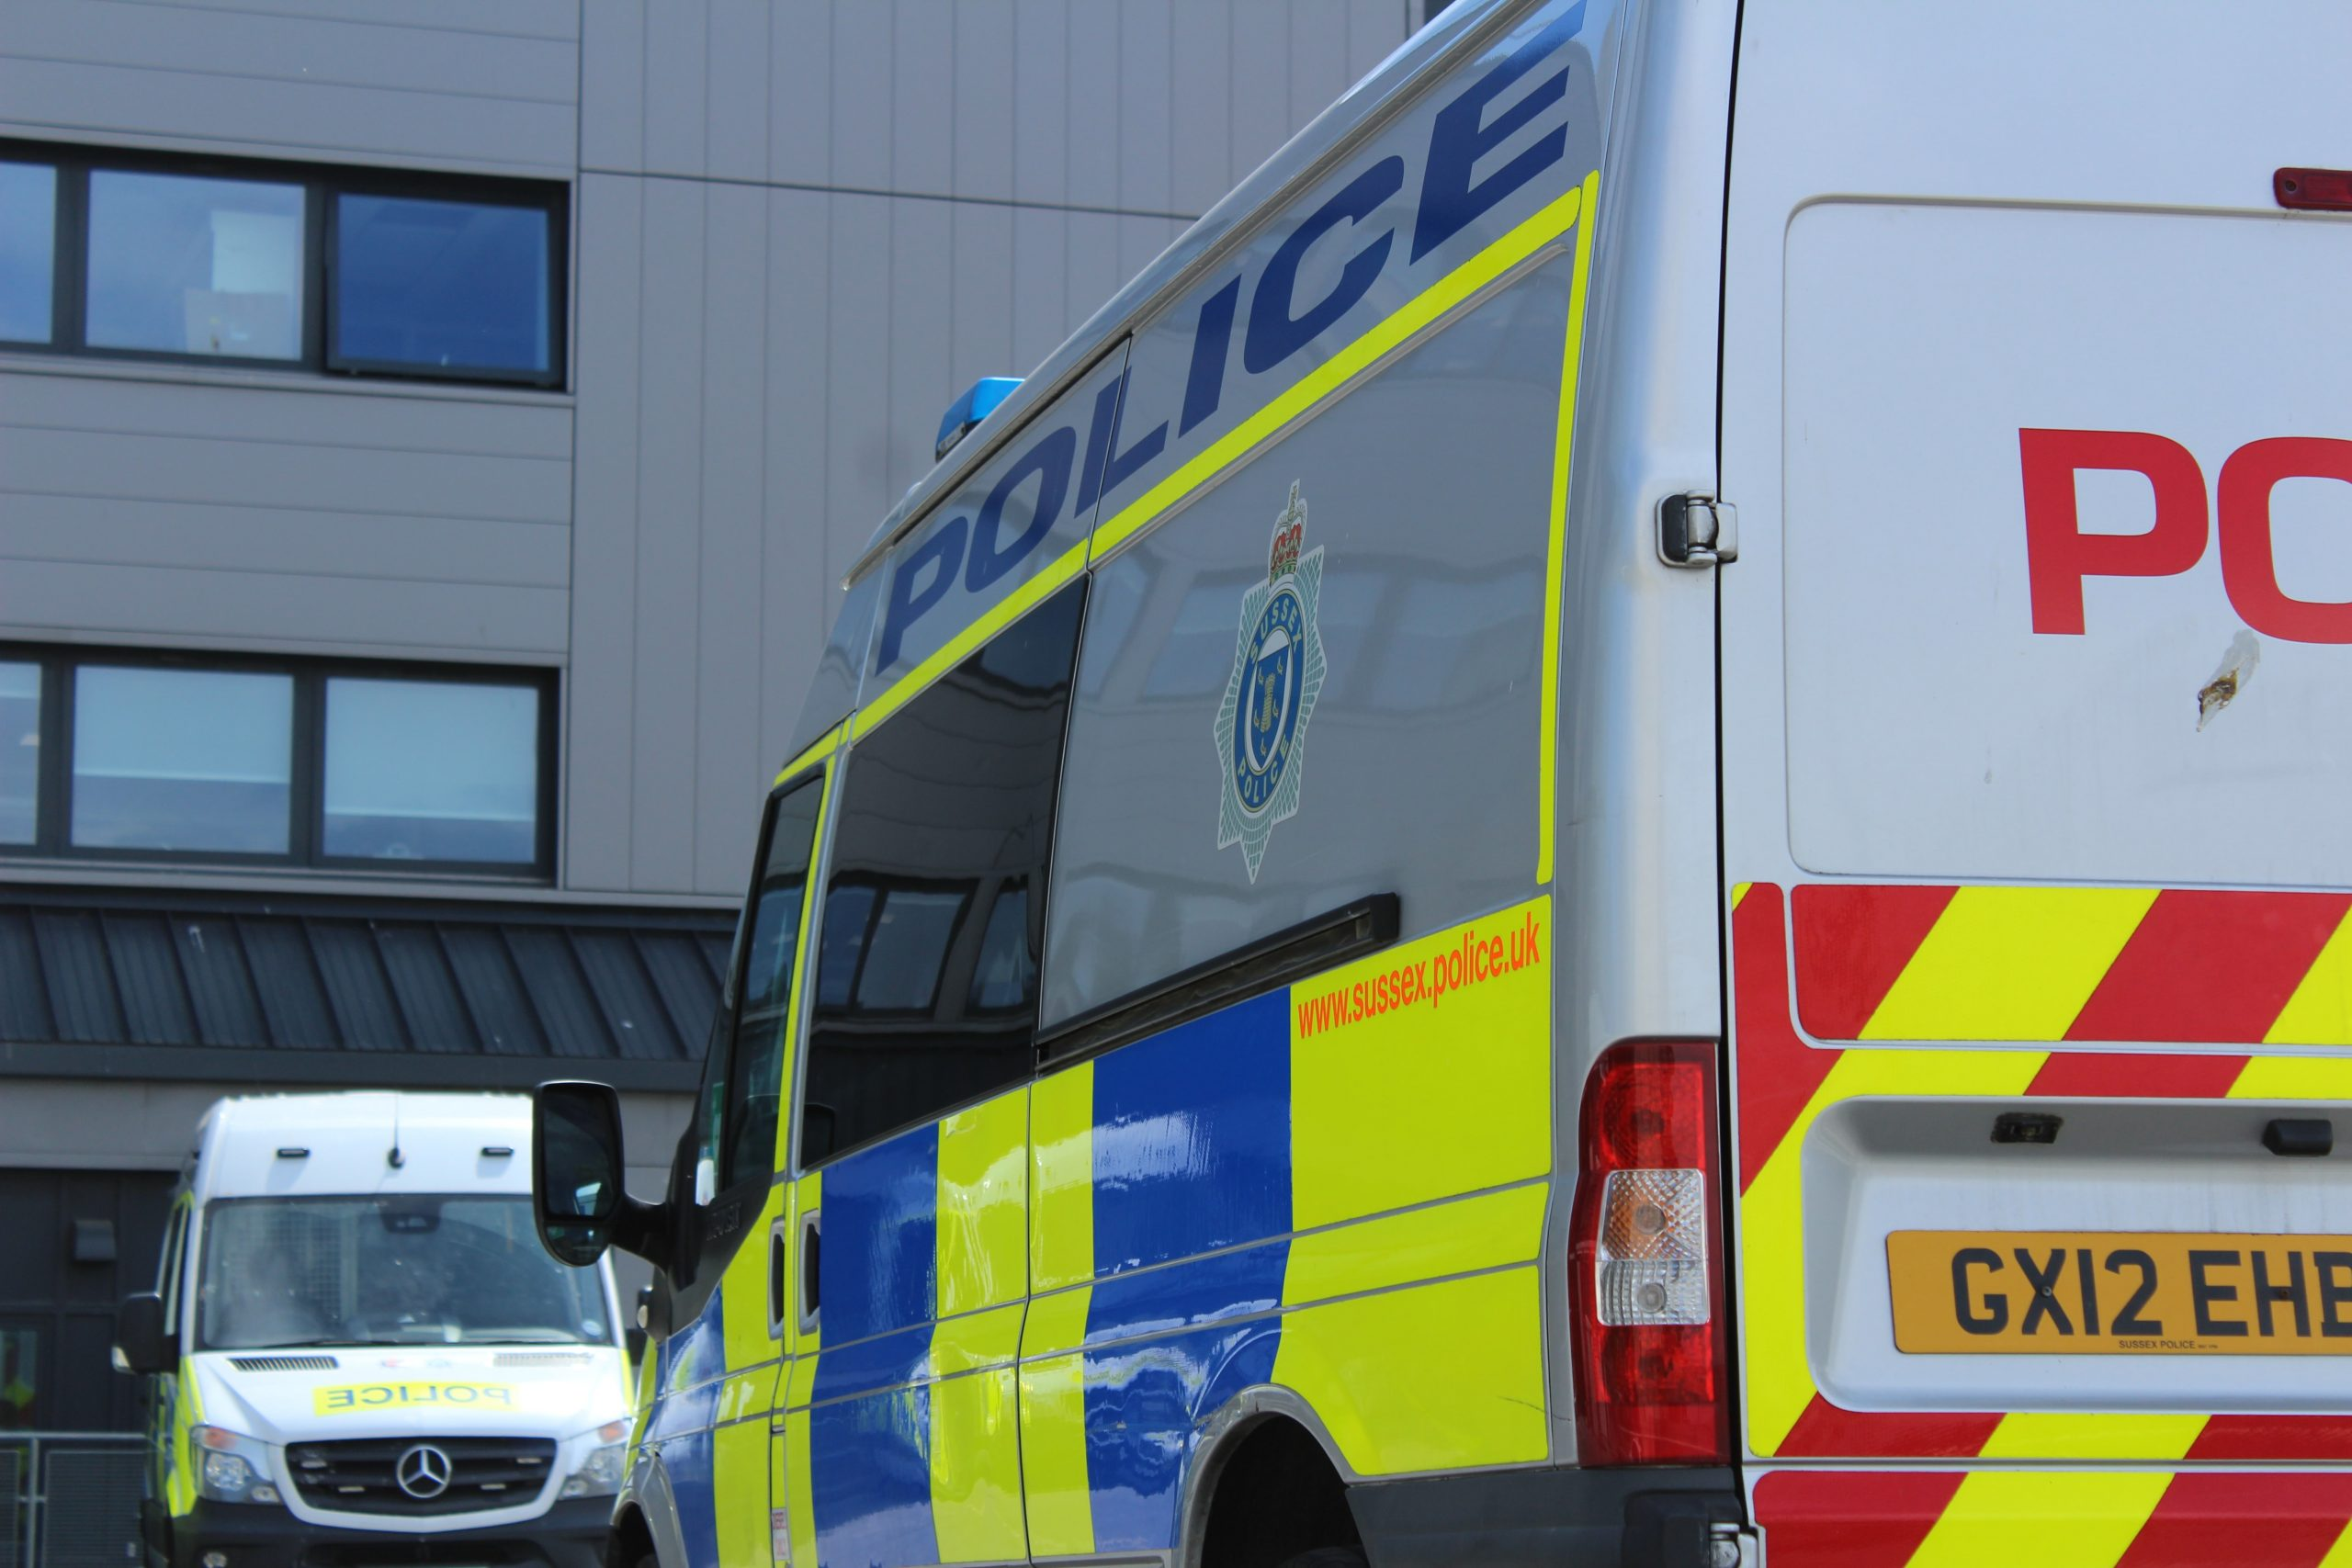 The photograph shows a UK police van from behind.